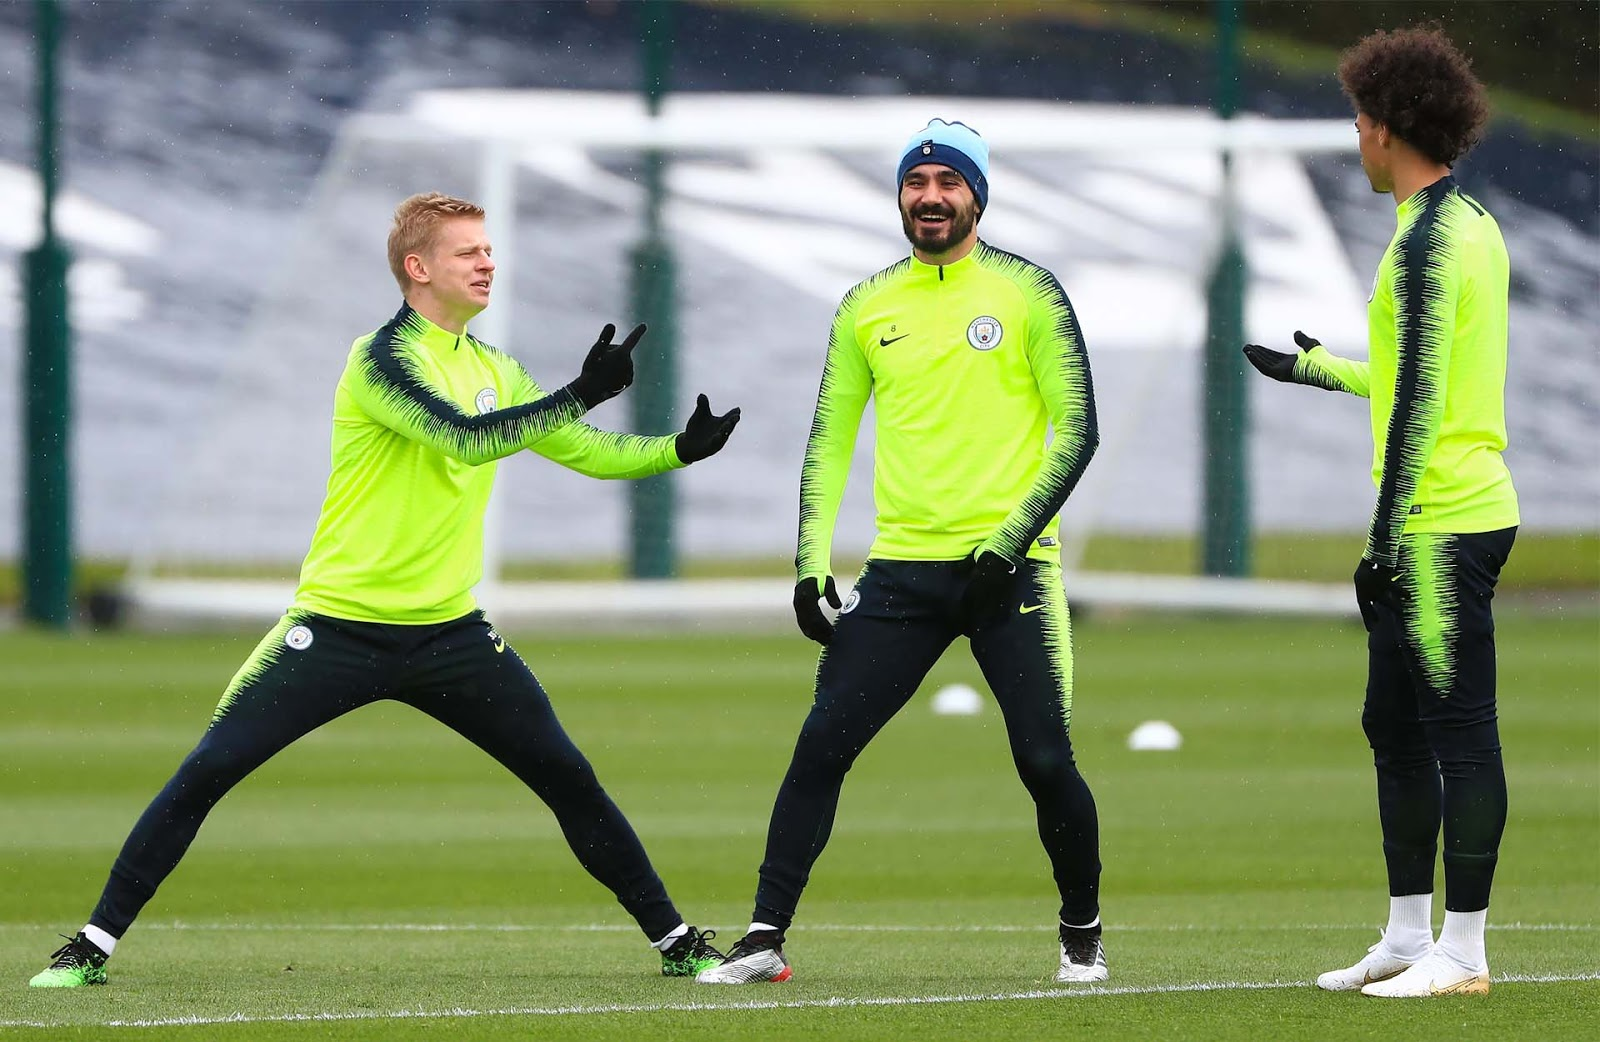 710abd171 ... has been spotted training in the upcoming white   gold Nike Mercurial  boots from the Euphoria Disruption pack that Nike has designed for those  special ...